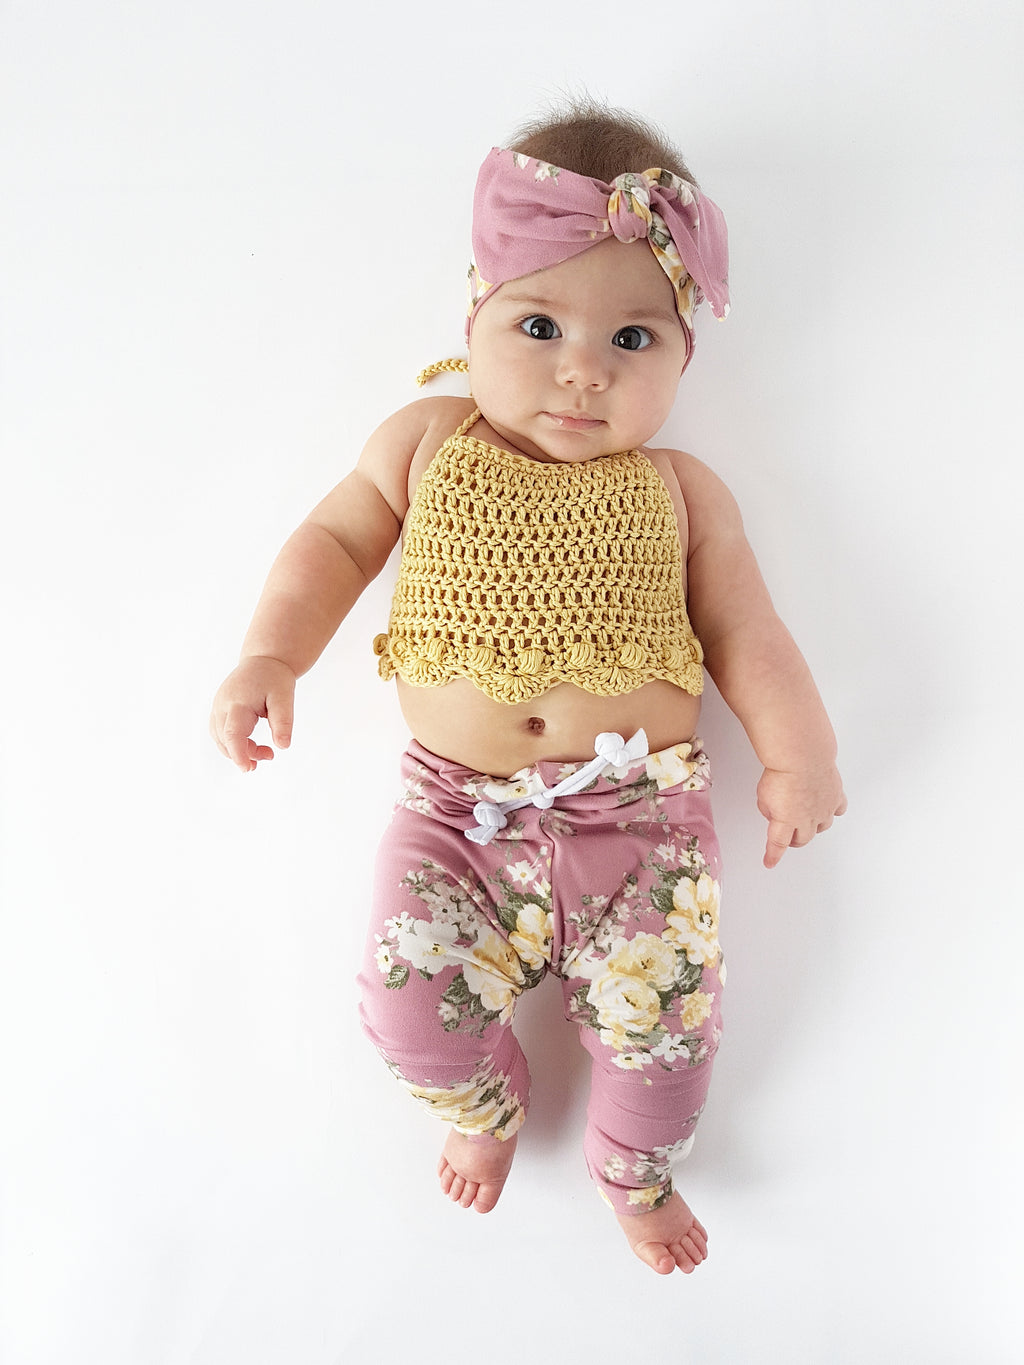 penelope crop top | + colours • pima cotton - Loops For Littles, handmade knits for infants and toddlers